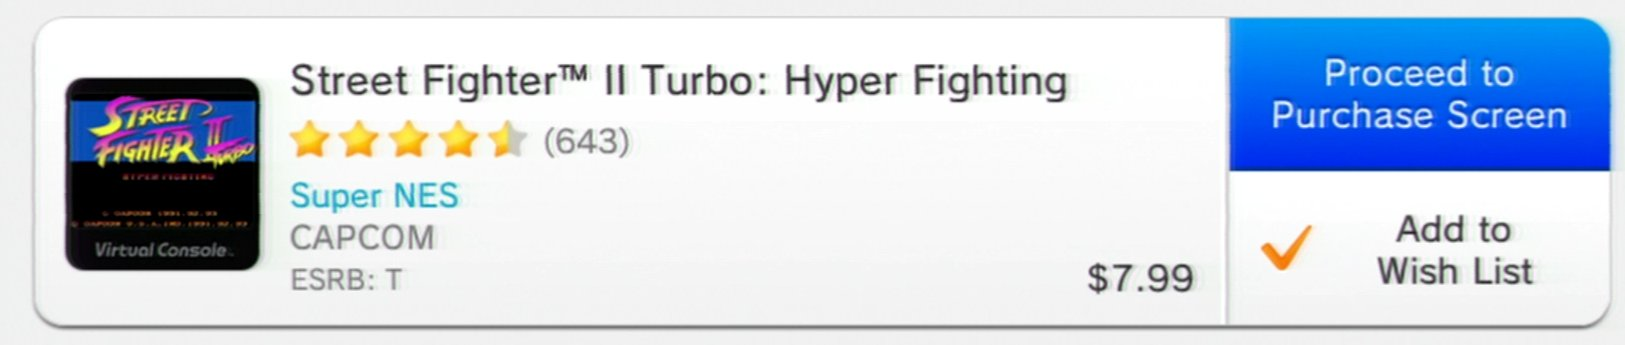 Street Fighter Ii Hyper Fighting Street Fighter Wiki Fandom